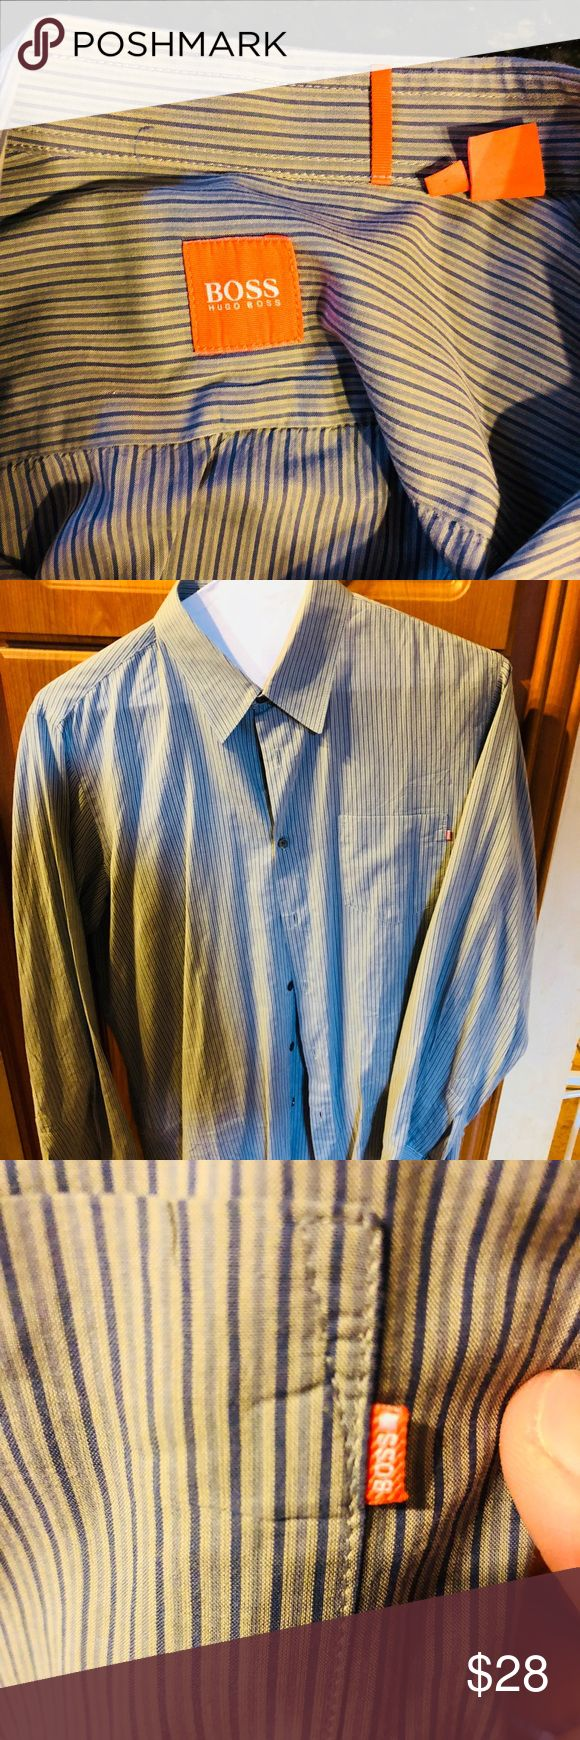 Men's Boss Orange striped button shirt blue Blue and gray striped button down shirt by BOSS orange. Unique as expected.m from Hugo boss . BOSS ORANGE Shirts Casual Button Down Shirts